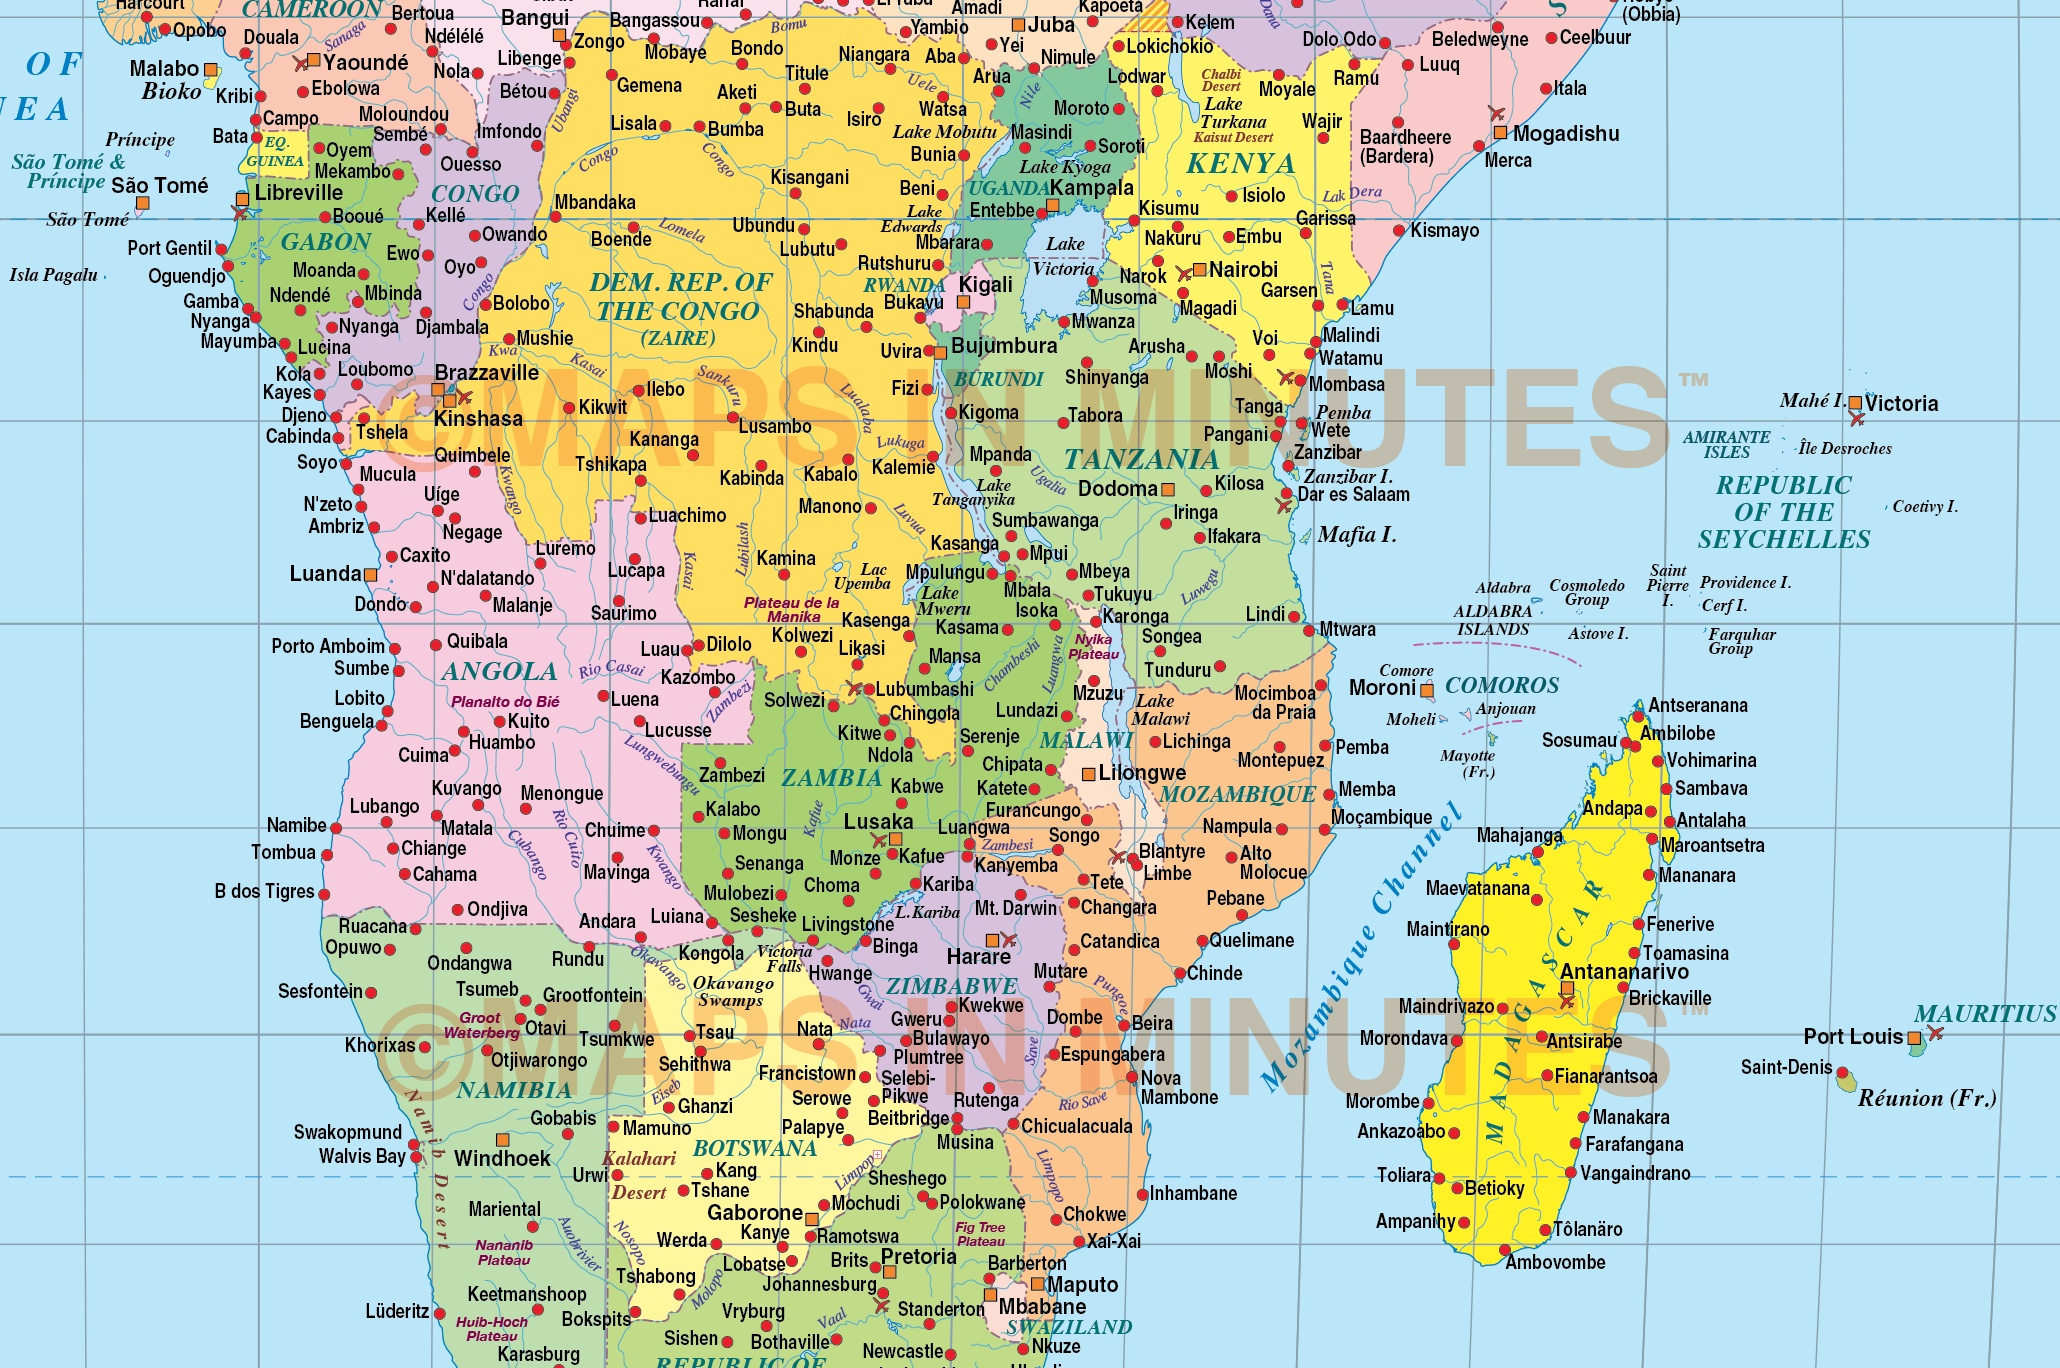 Vector world map times projection political uk centric 10m scale in times projection political world map uk centric 10m scale central africa detail gumiabroncs Gallery